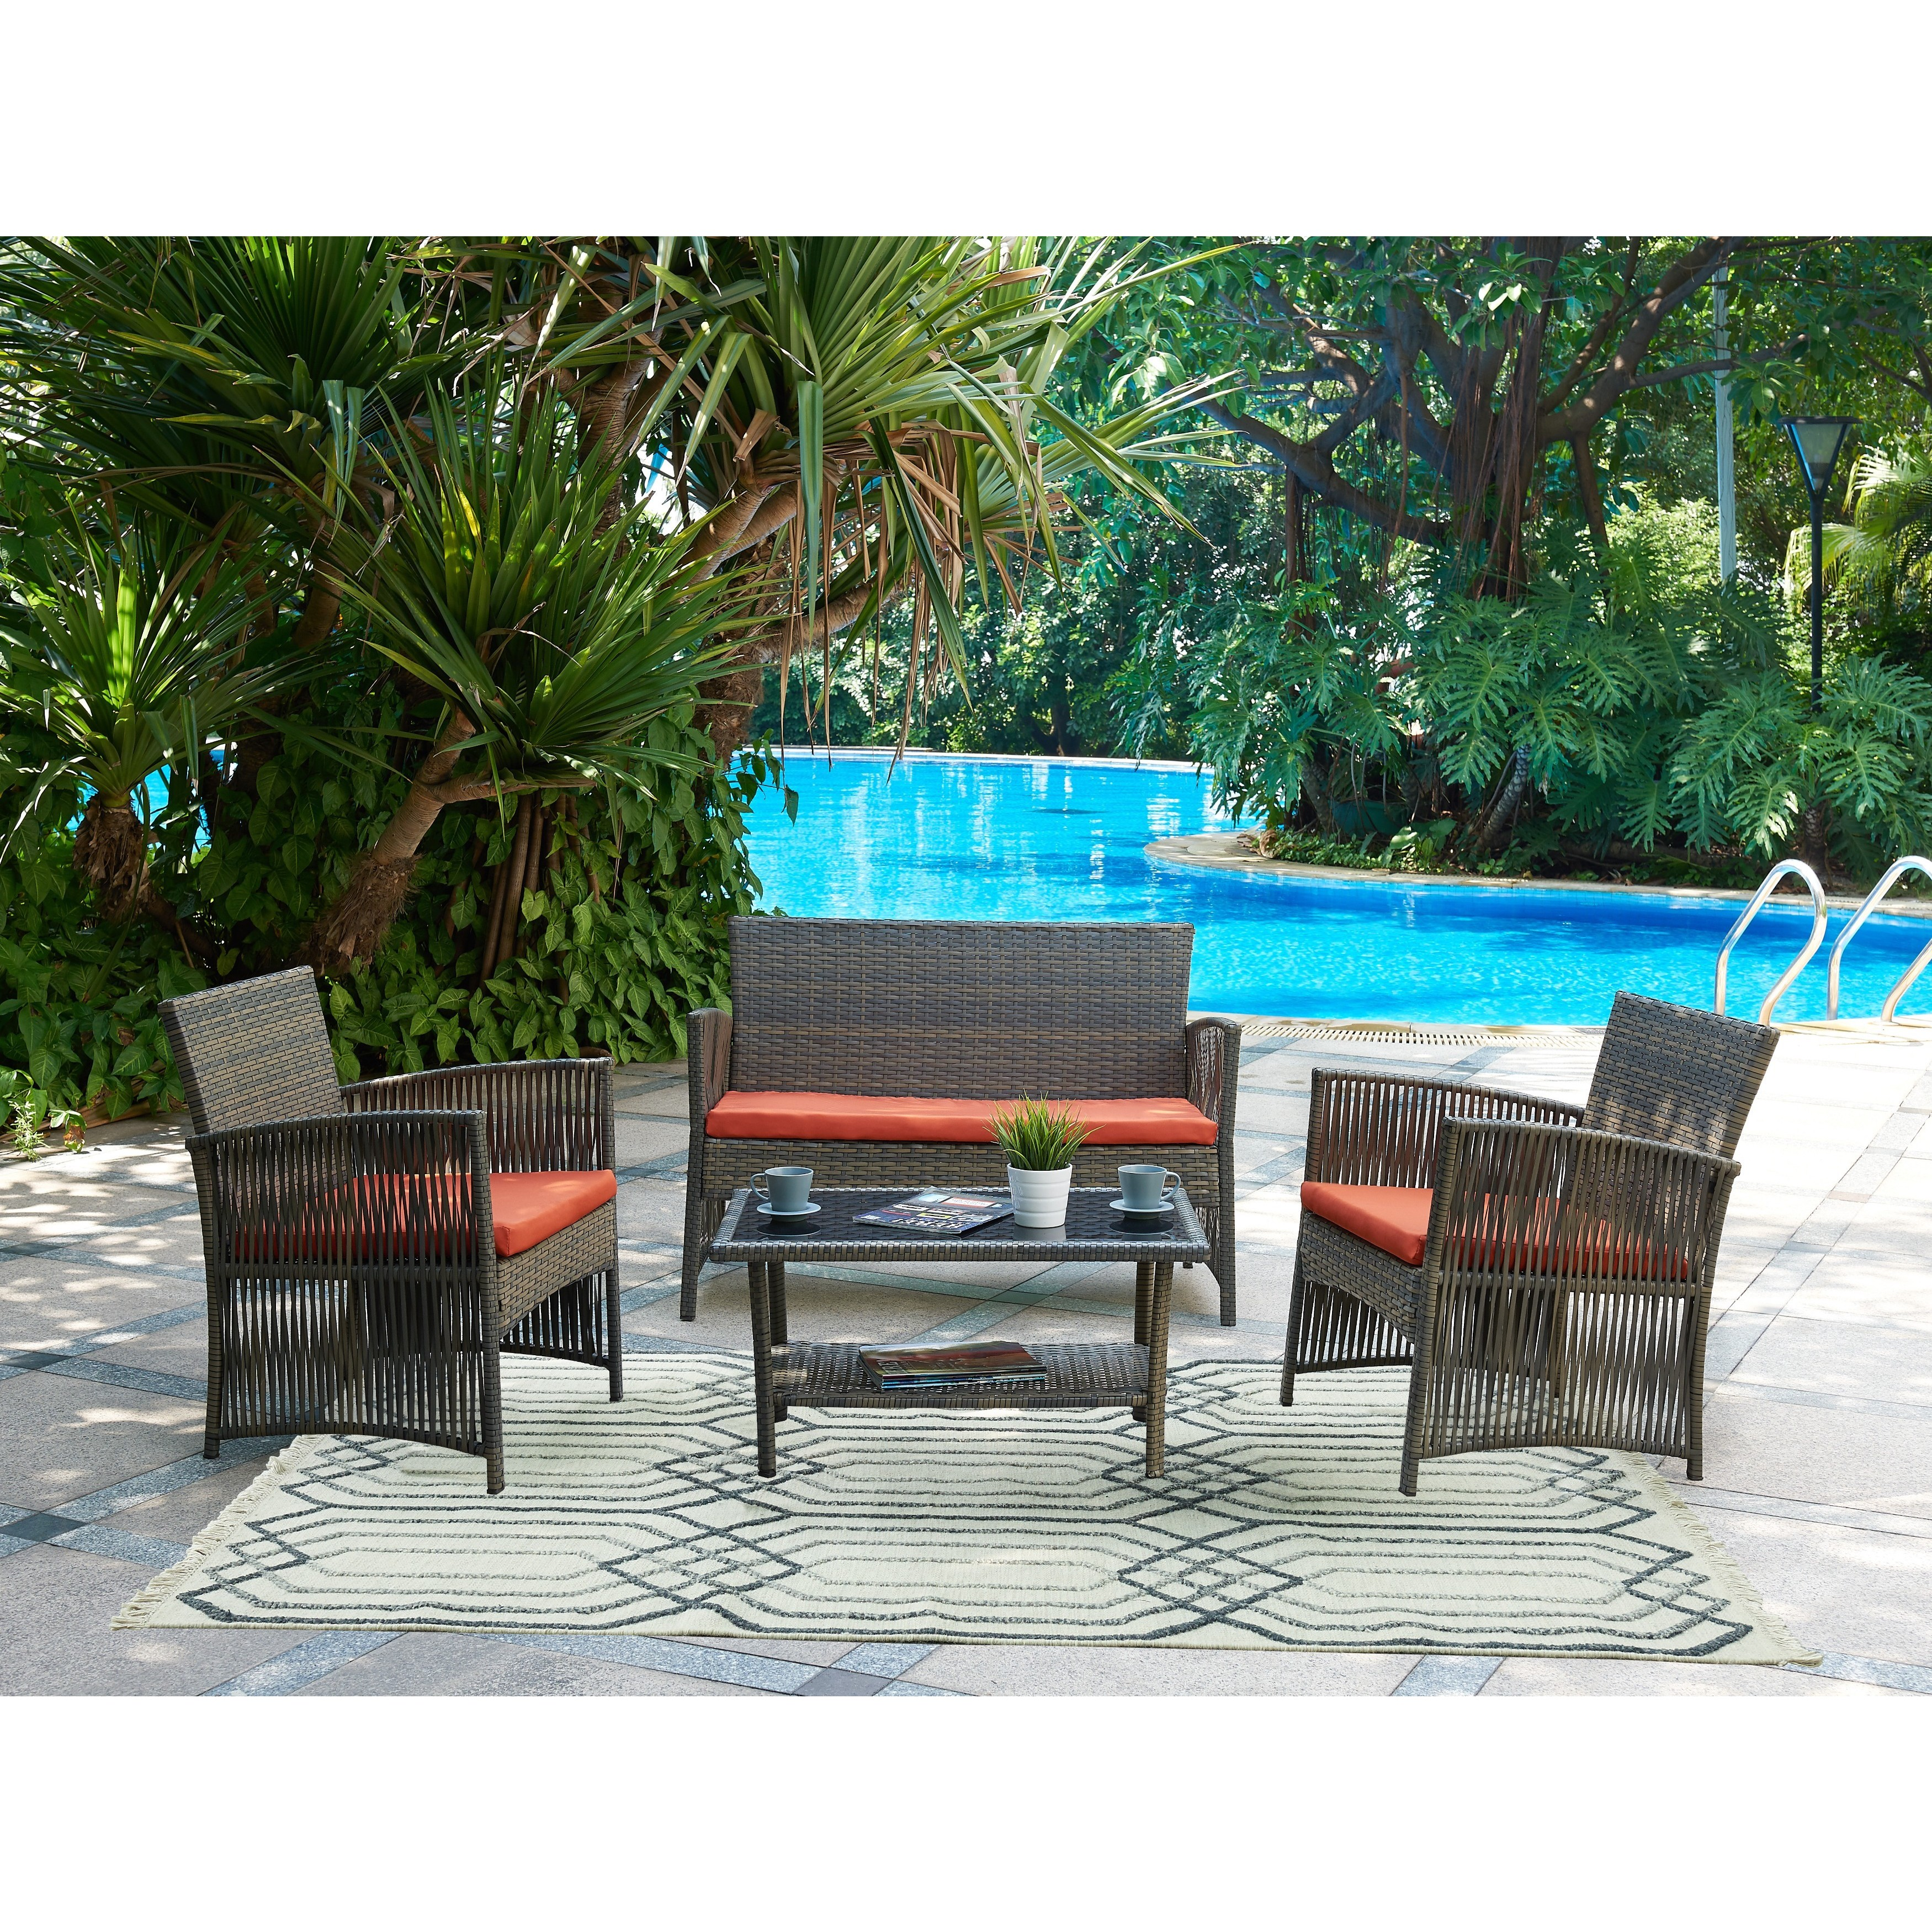 Stupendous Dg Casa Patio Furniture Find Great Outdoor Seating Andrewgaddart Wooden Chair Designs For Living Room Andrewgaddartcom